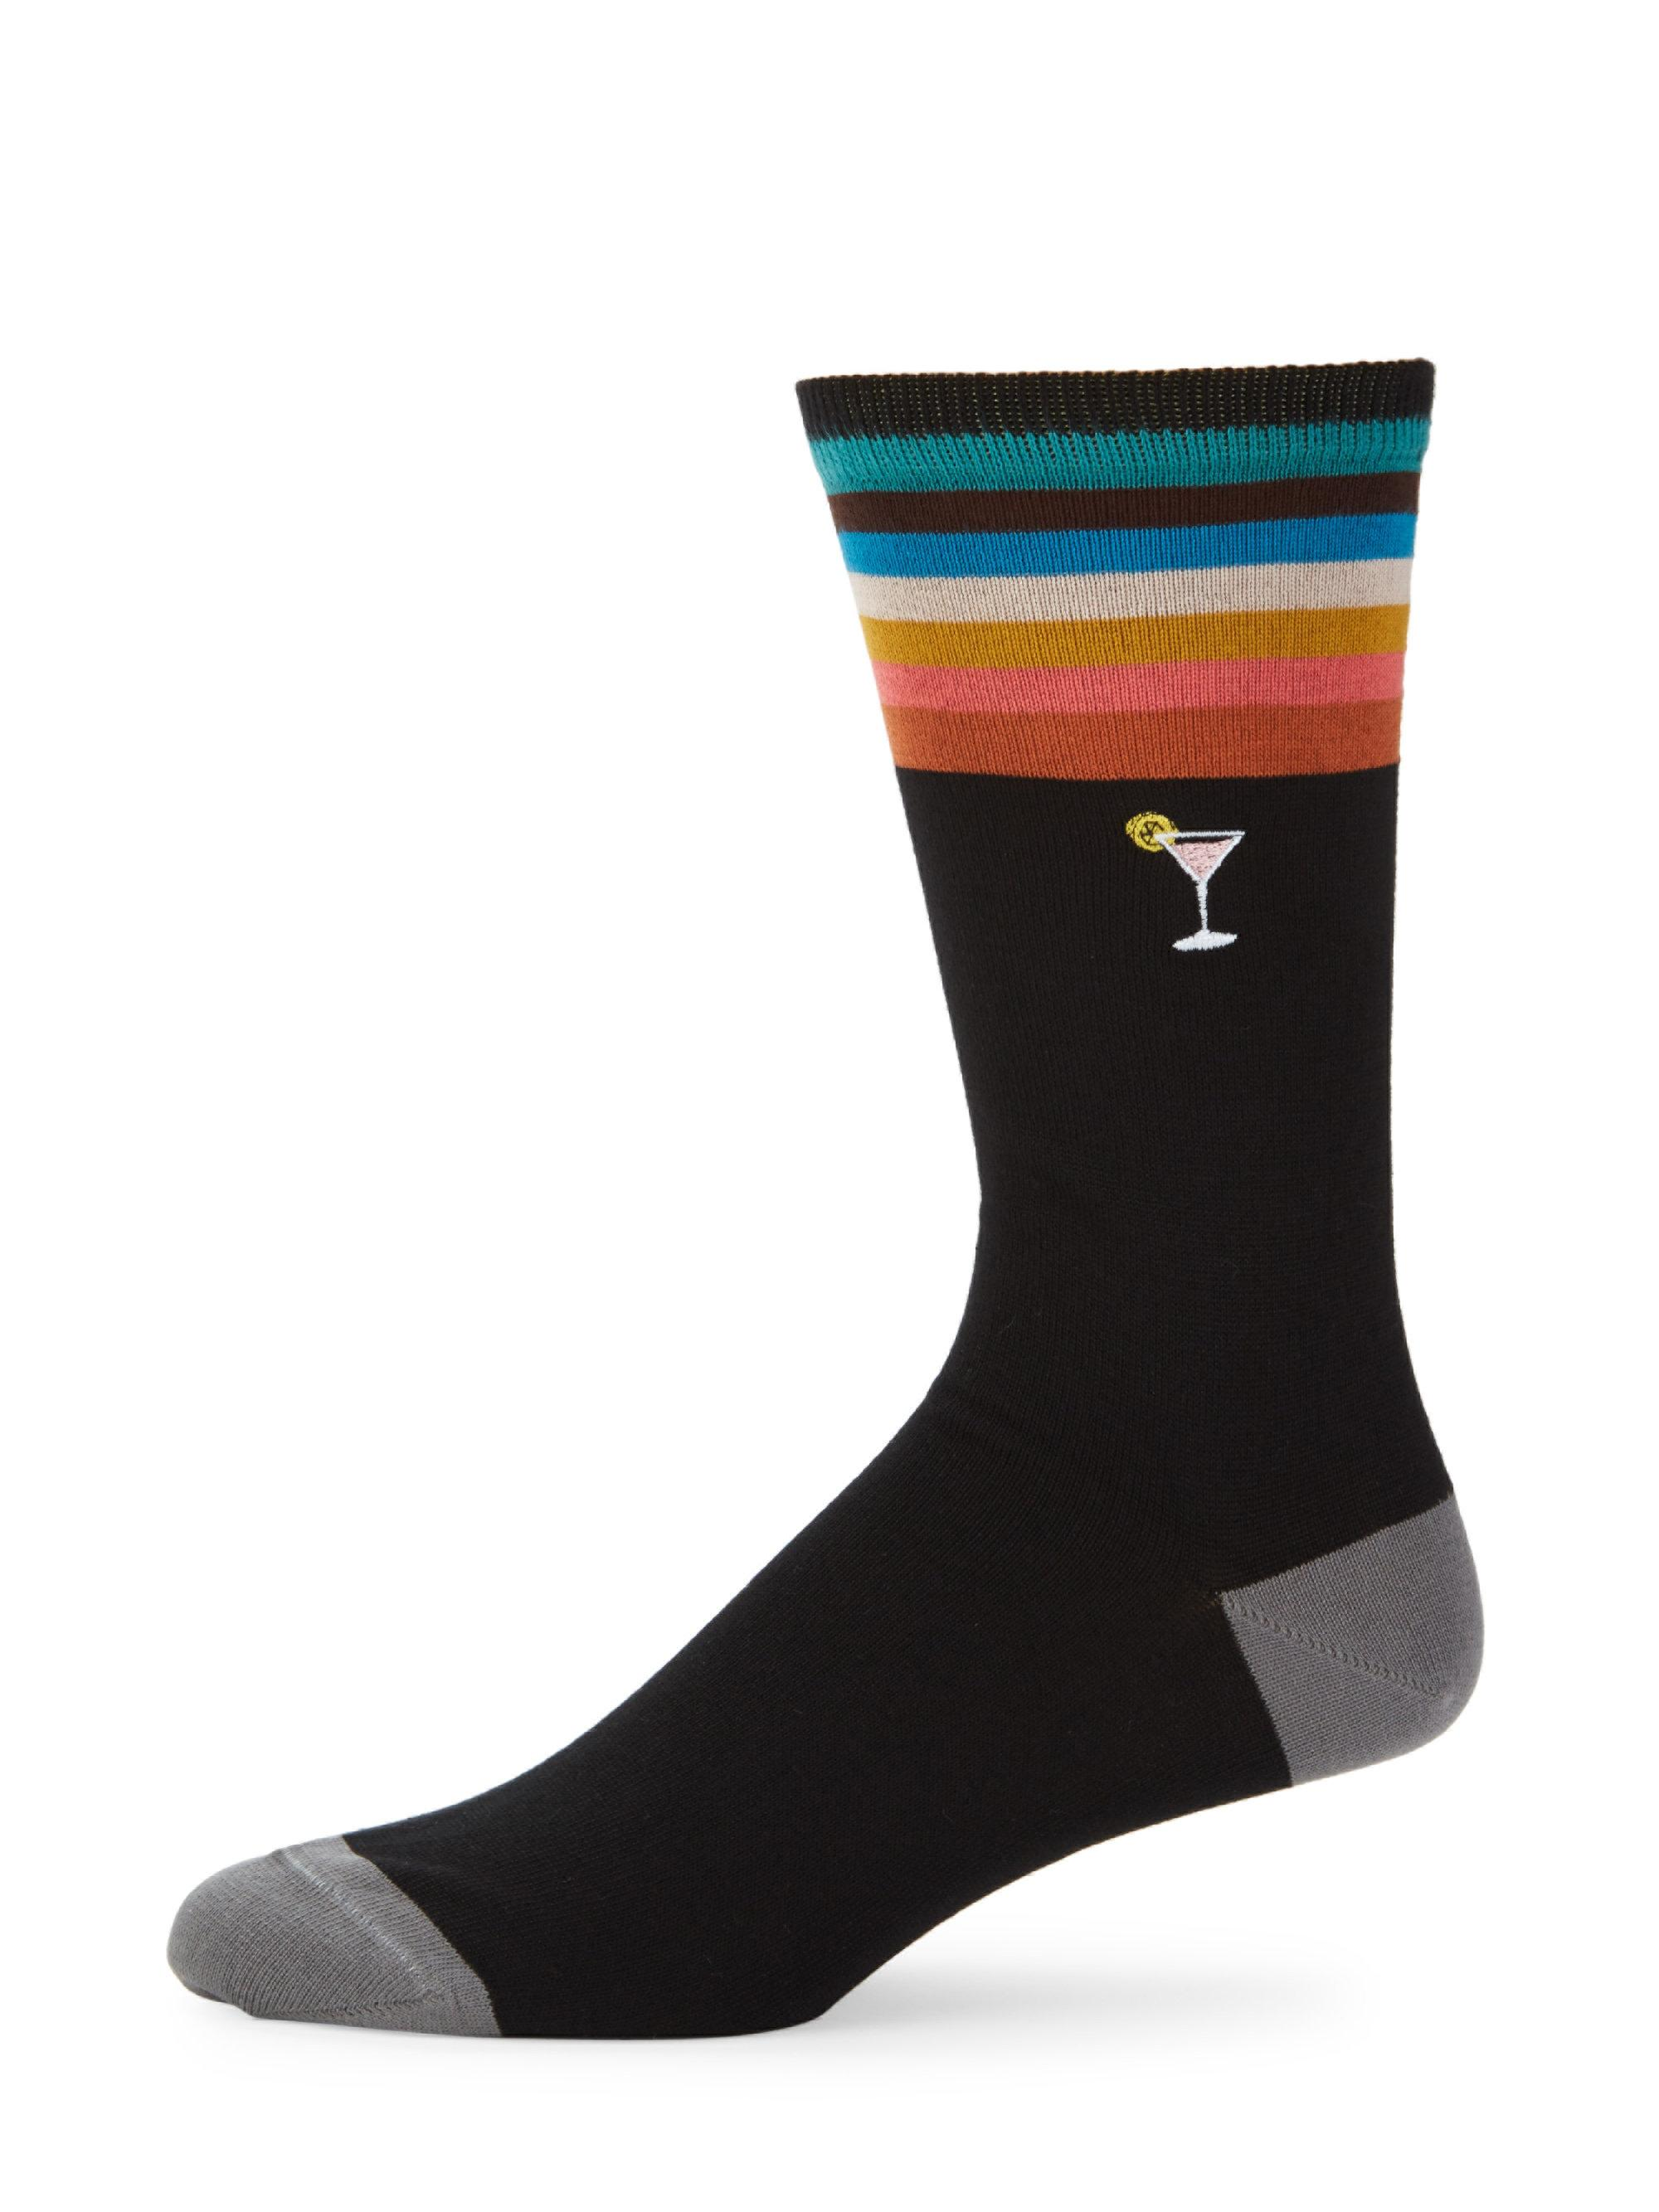 Paul Smith. Men's Black Embroidered Martini Socks